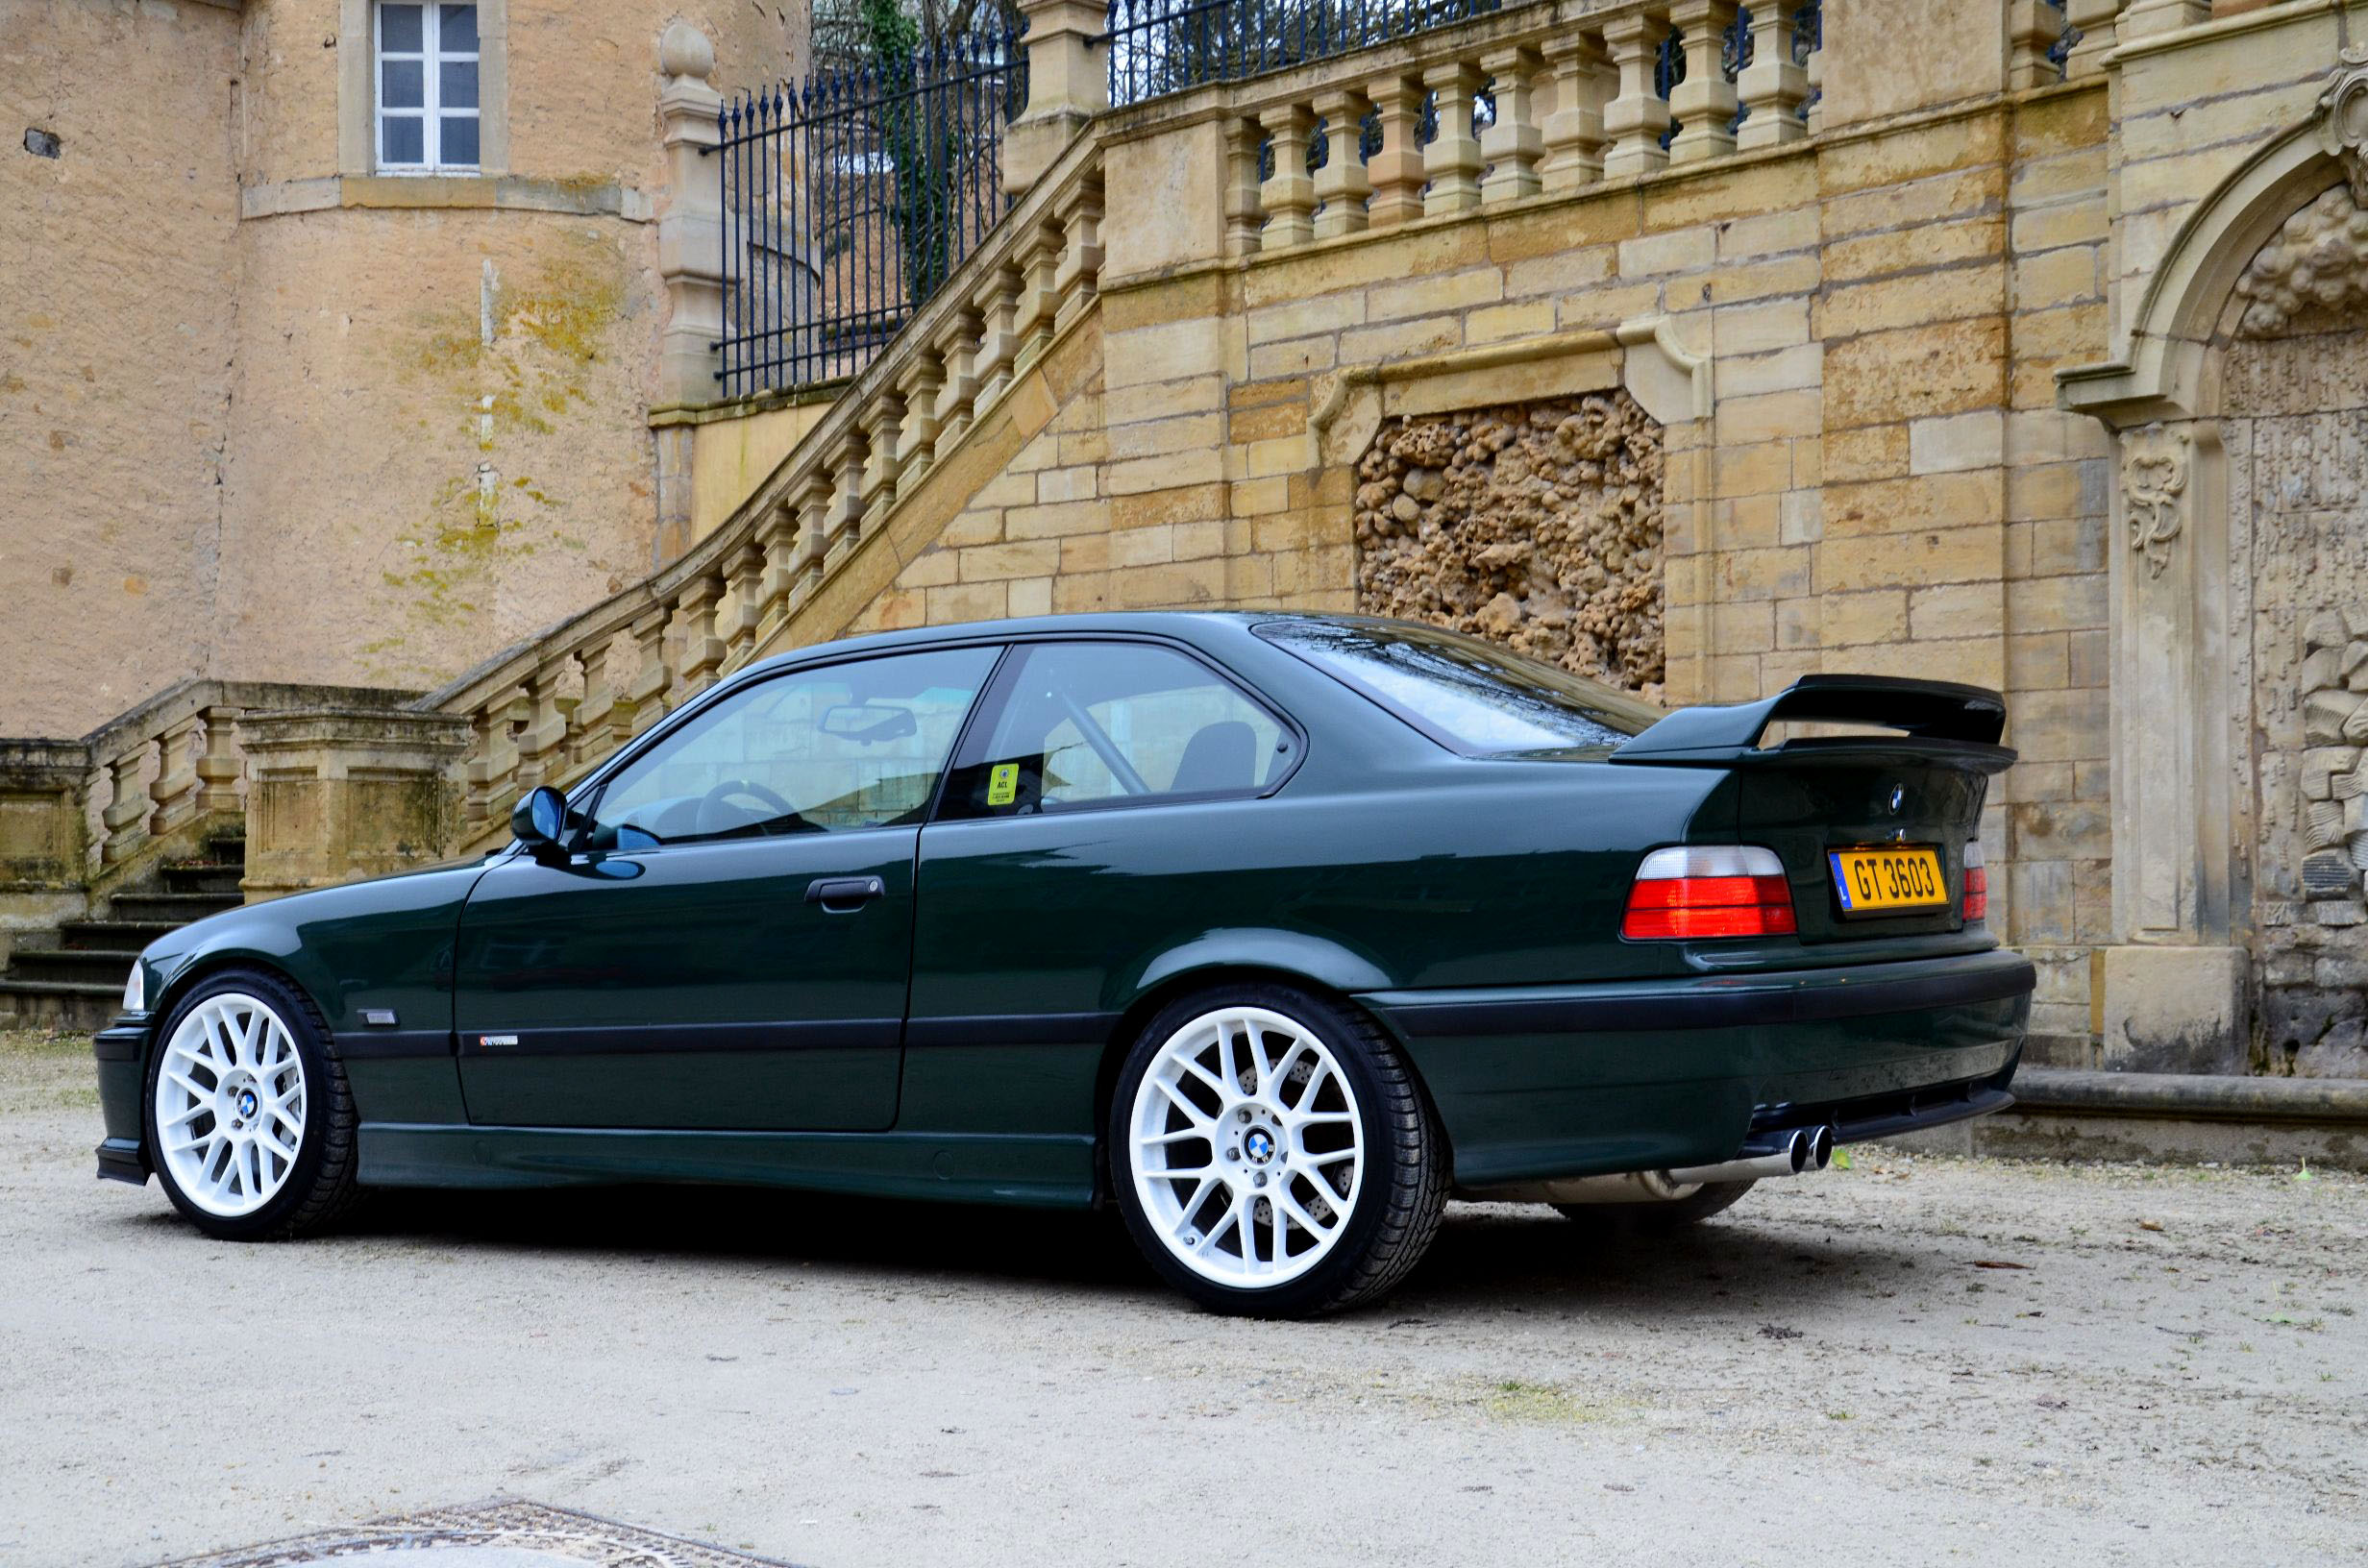 E36 m3 gt twin turbo bmw m5 forum and m6 forums